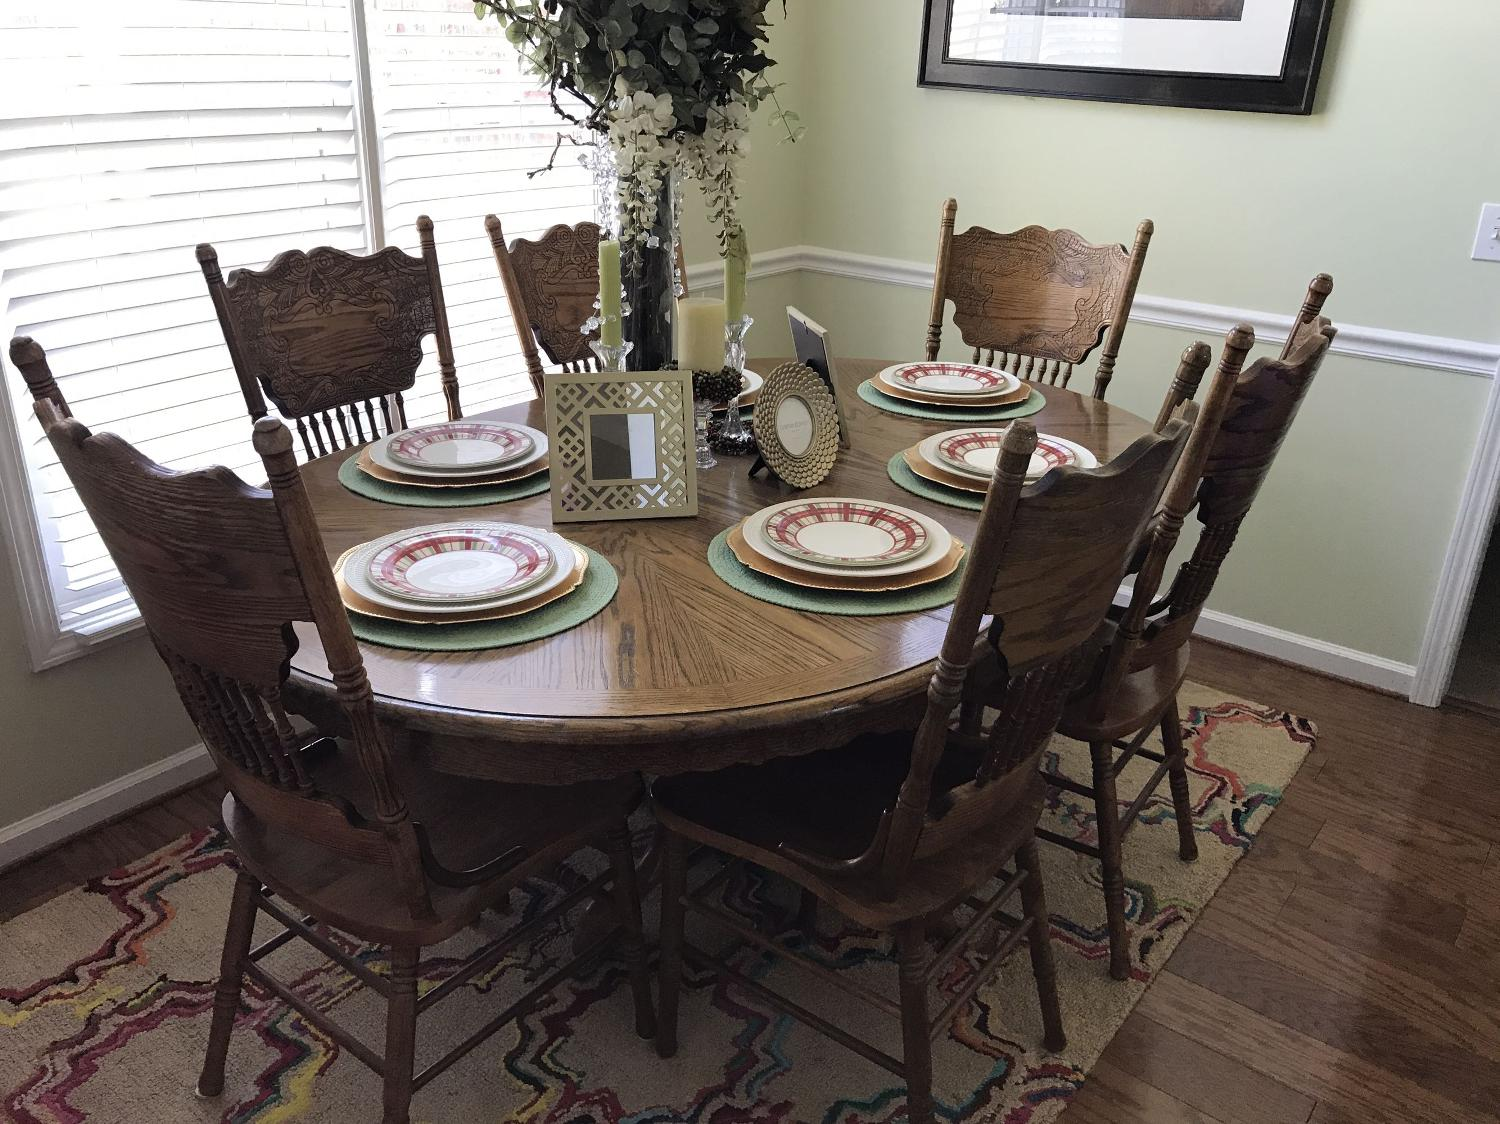 Find More Oak Dining Room Table With 6 Chairs For Sale At Up To 90 Off Sumter Sc